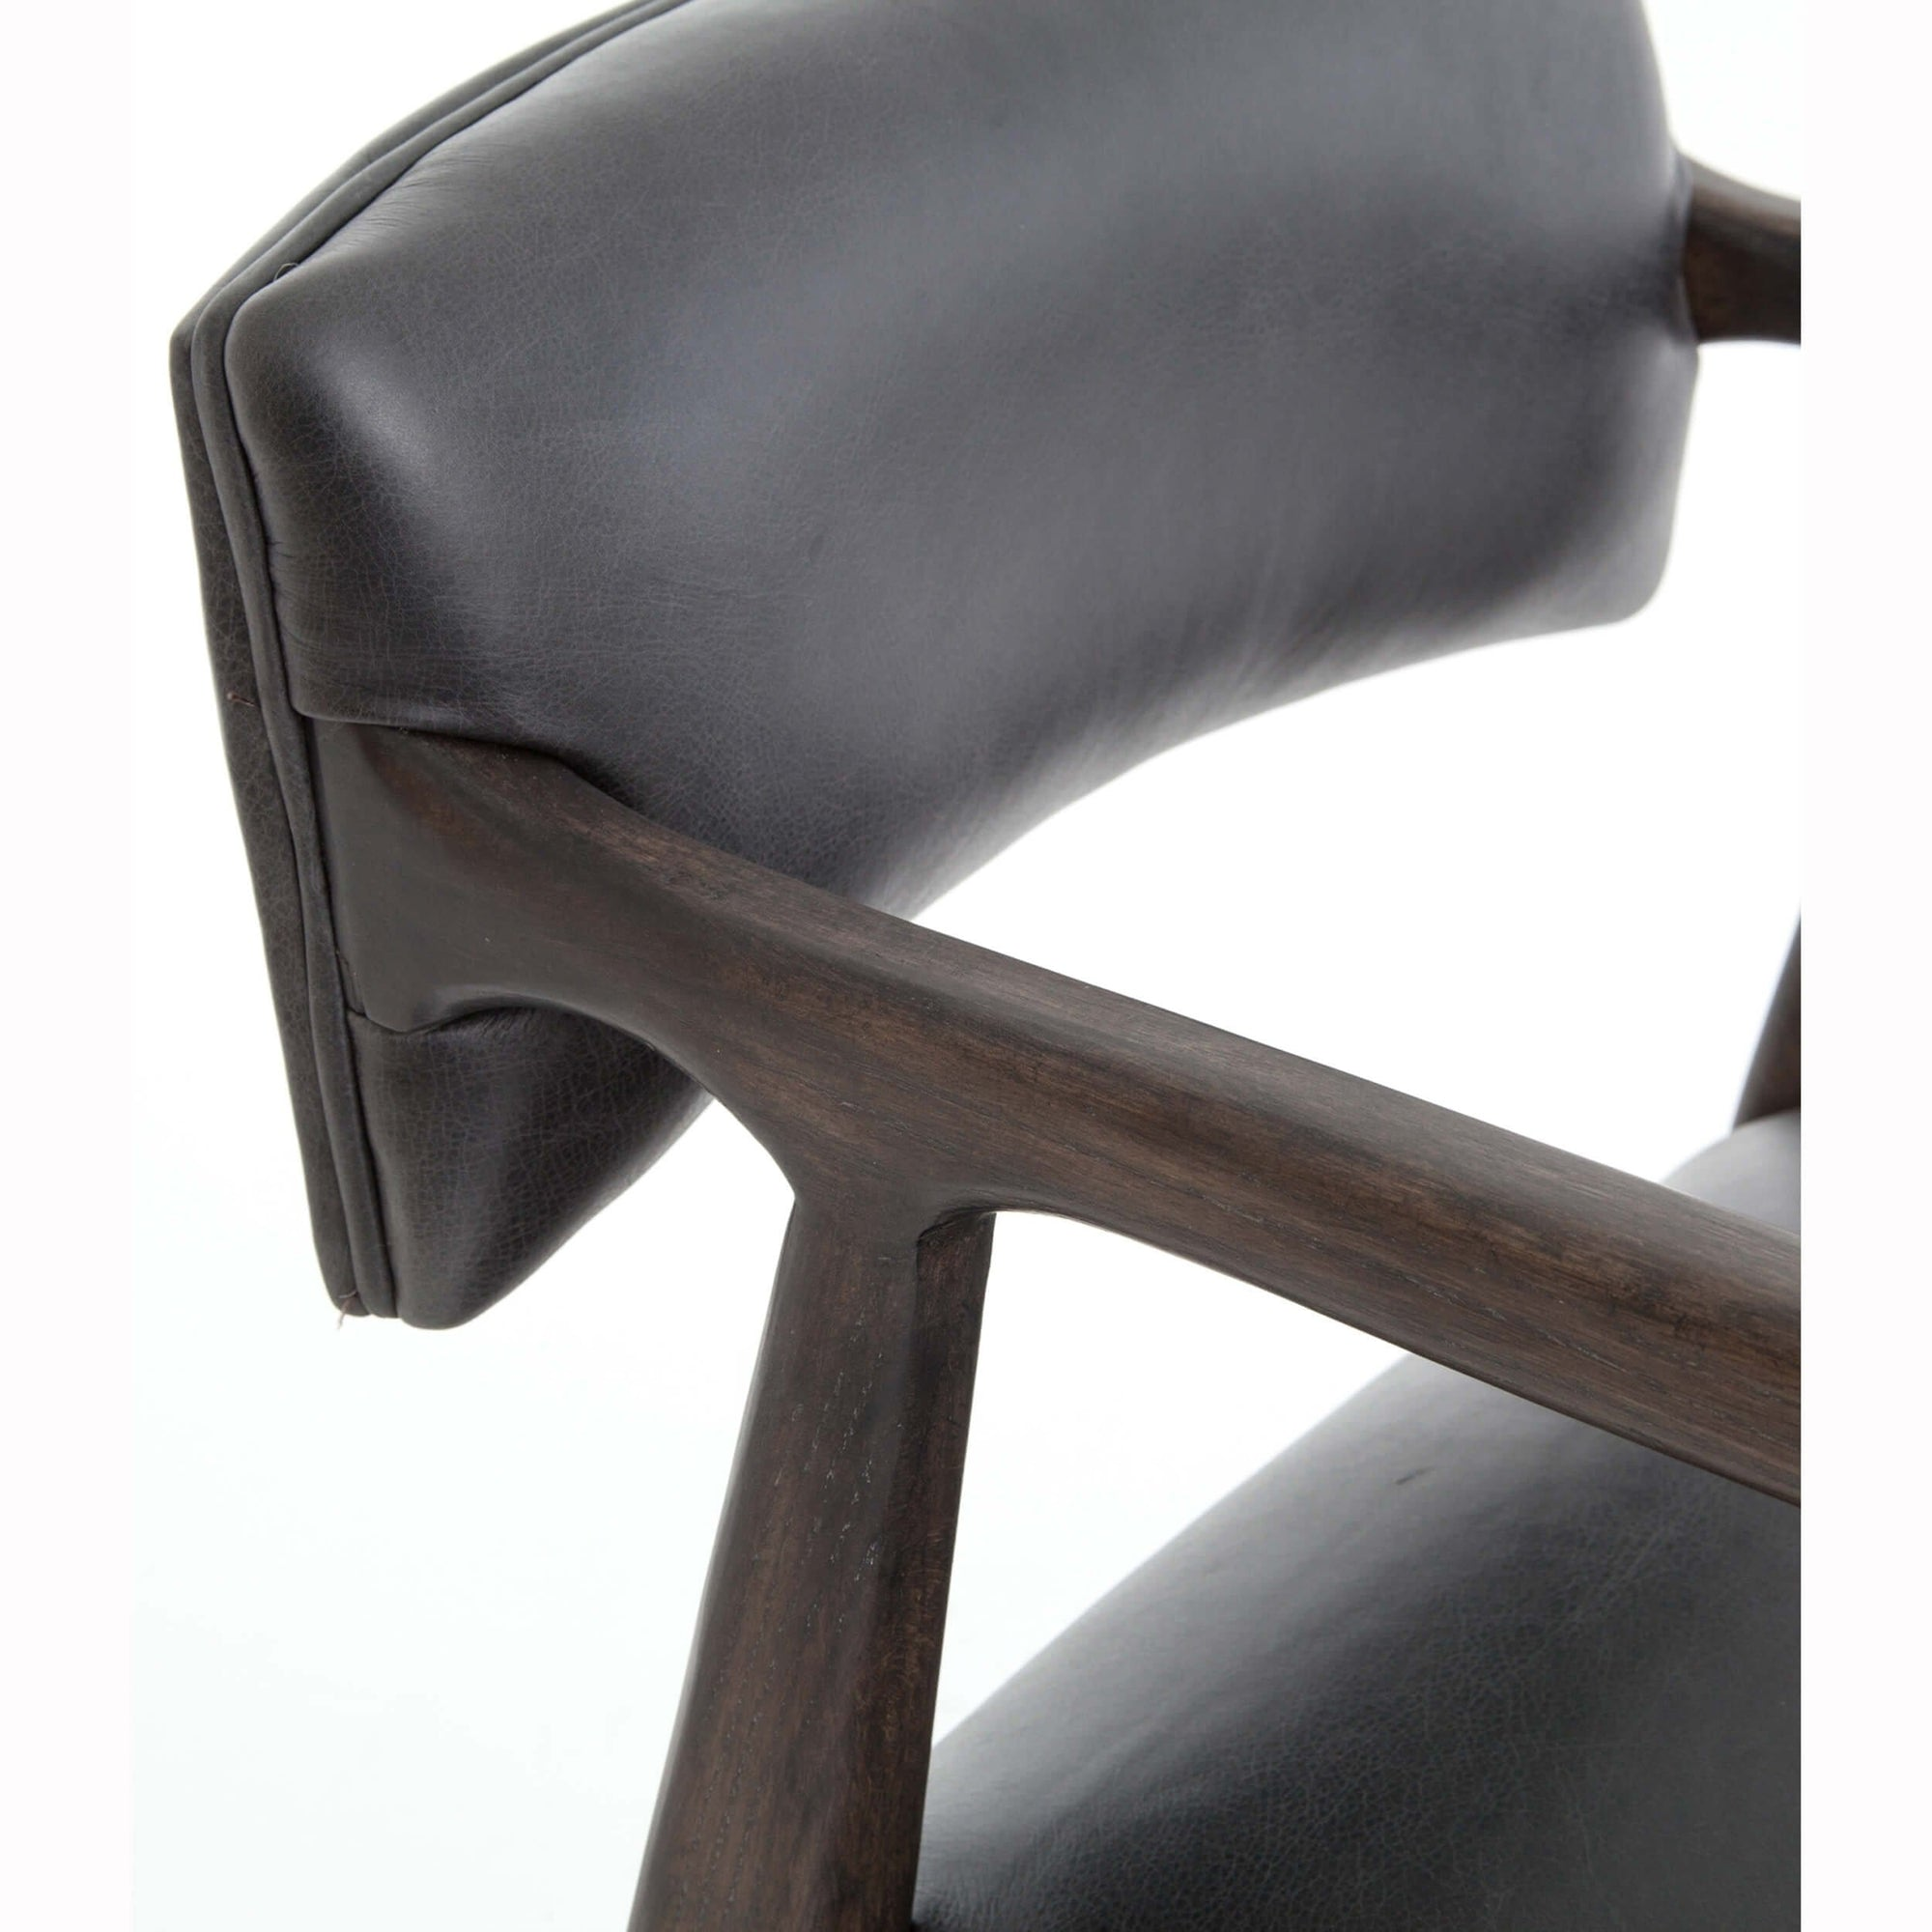 Marvelous Tyler Leather Counter Stool Chaps Ebony High Fashion Home Caraccident5 Cool Chair Designs And Ideas Caraccident5Info